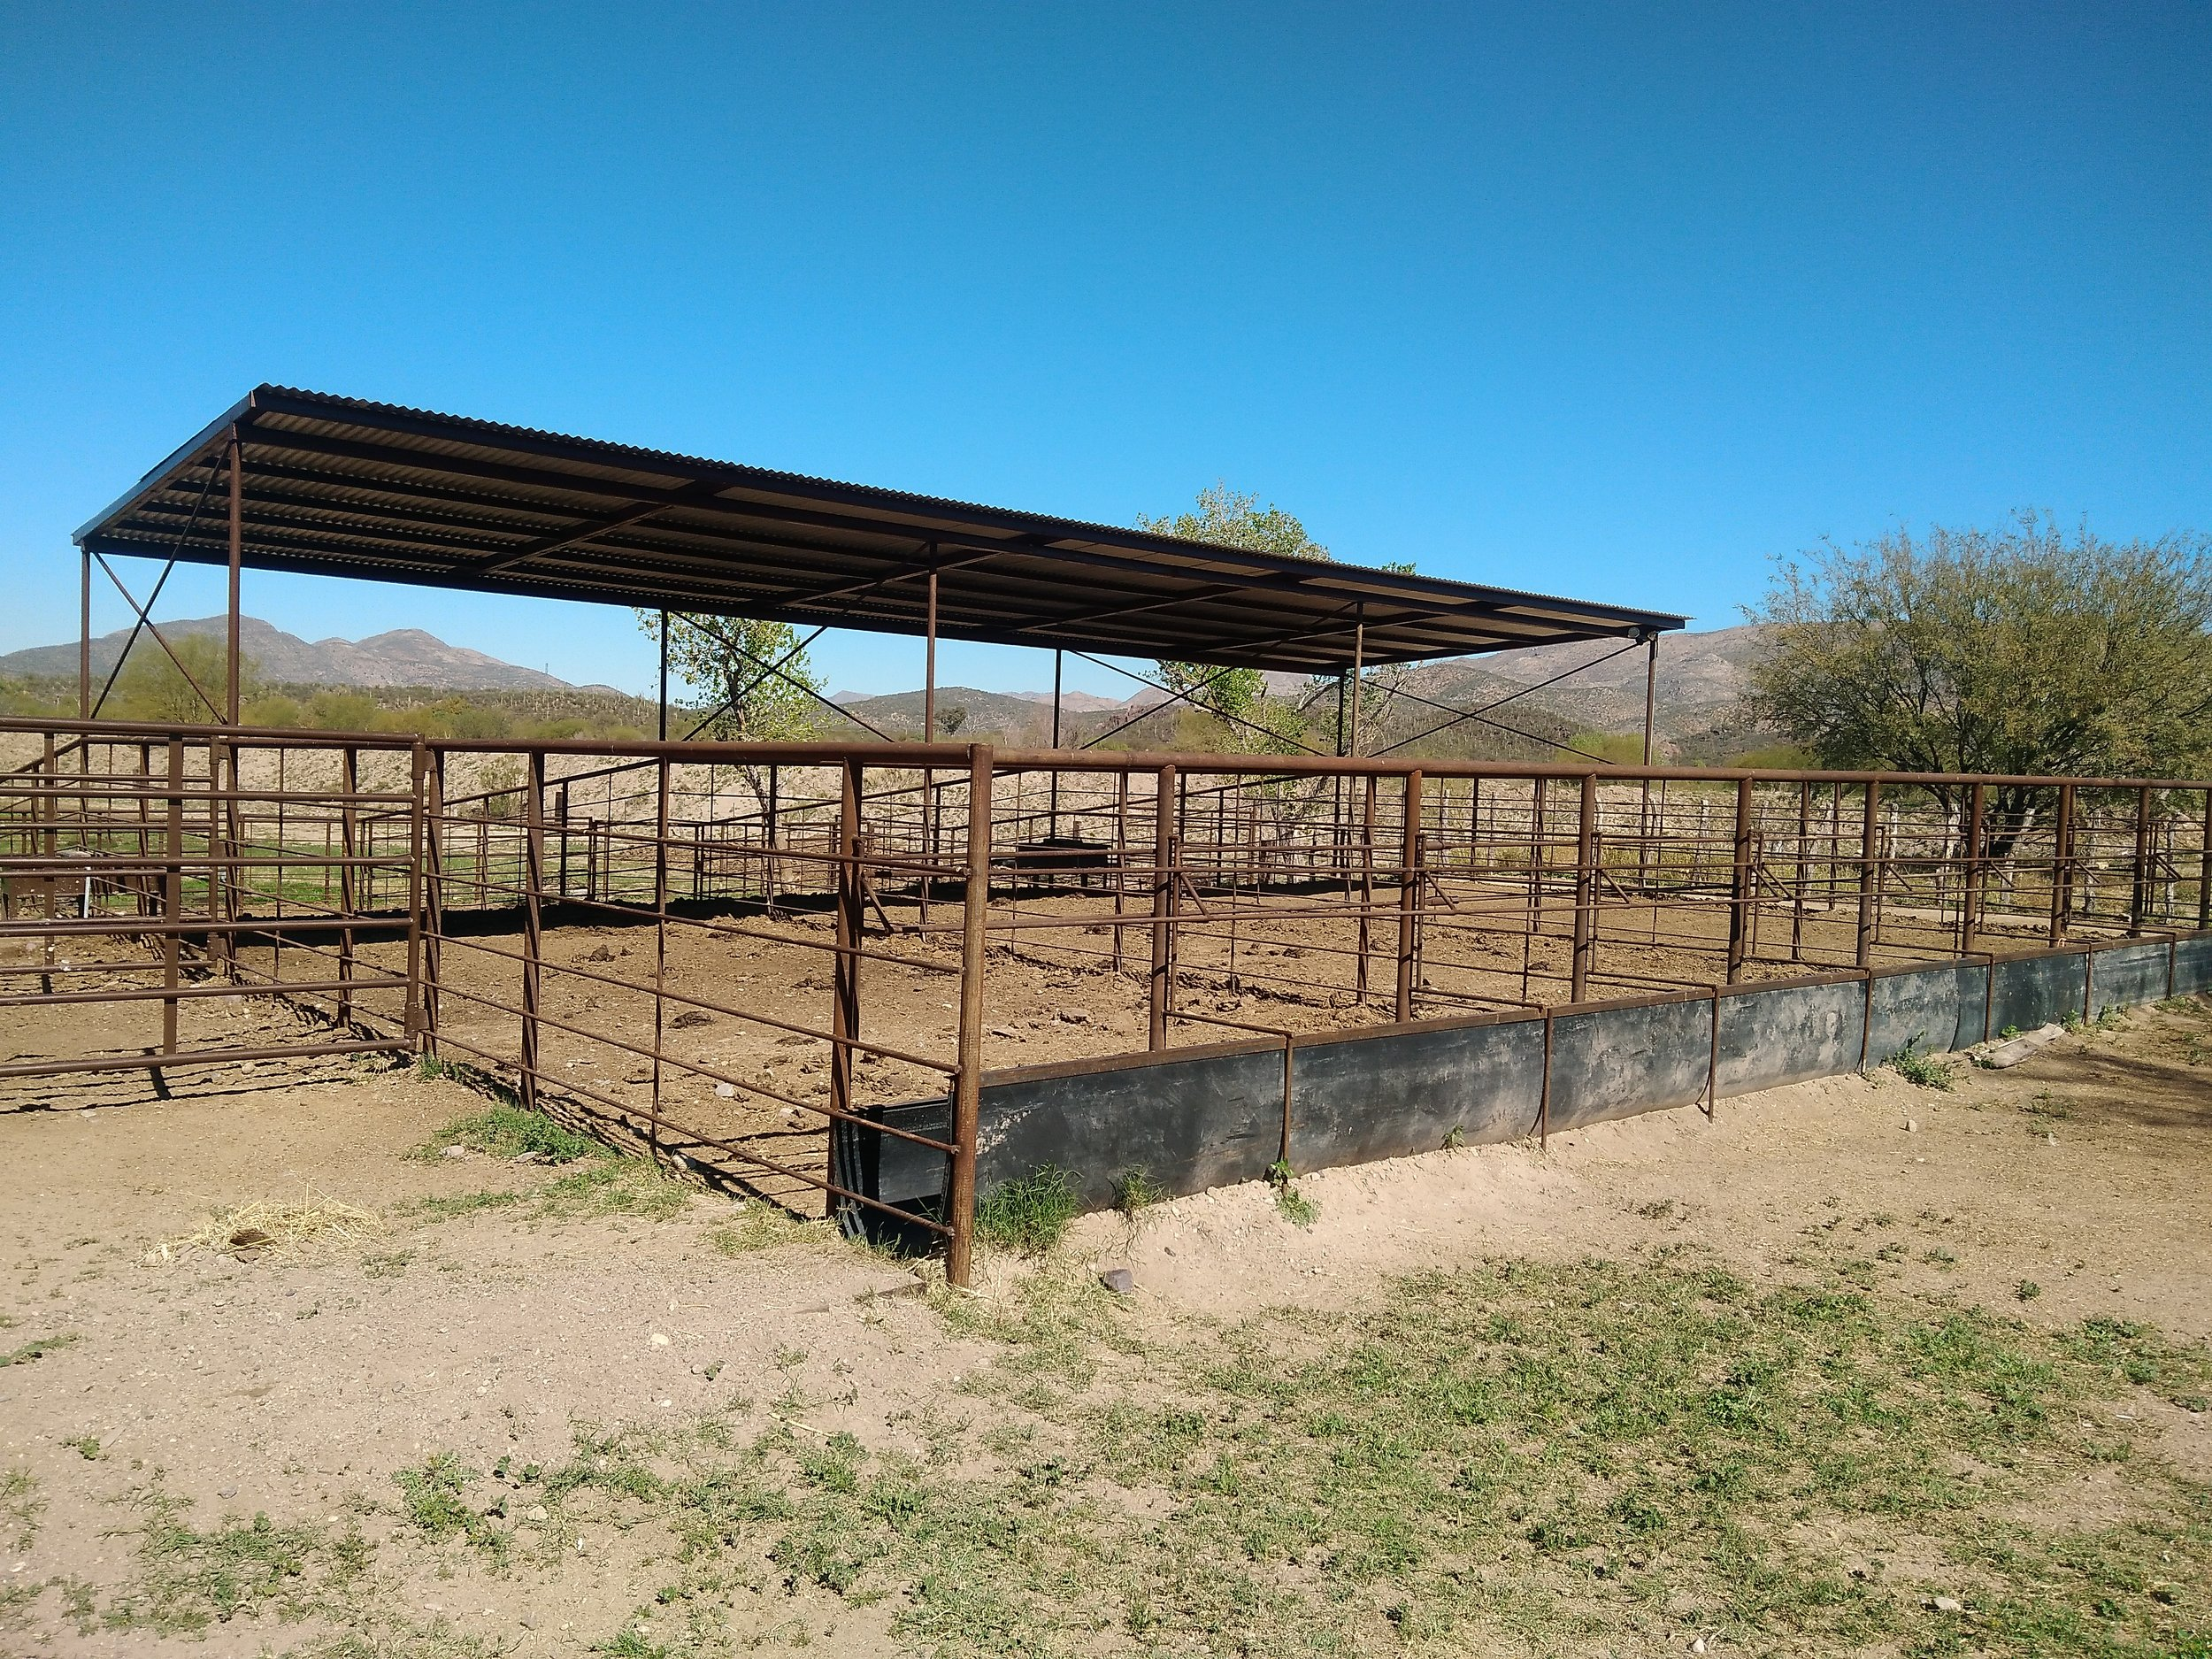 Feedlot and sorting area